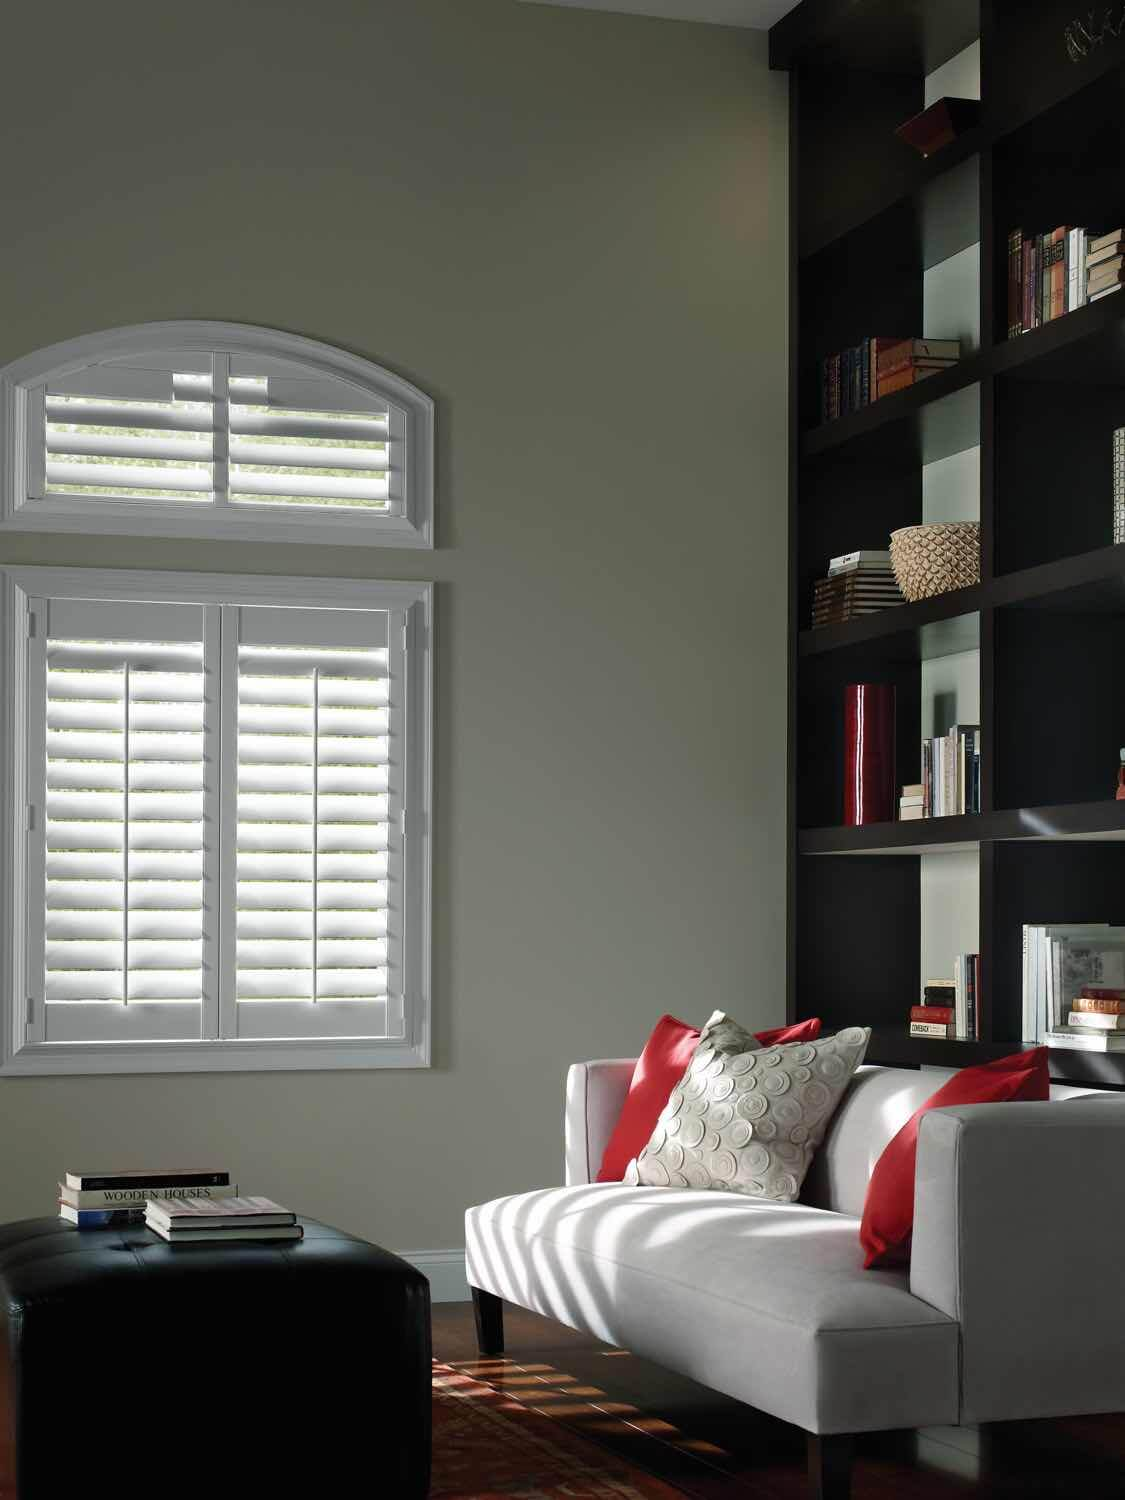 Interior Shutters - Today's Interiors